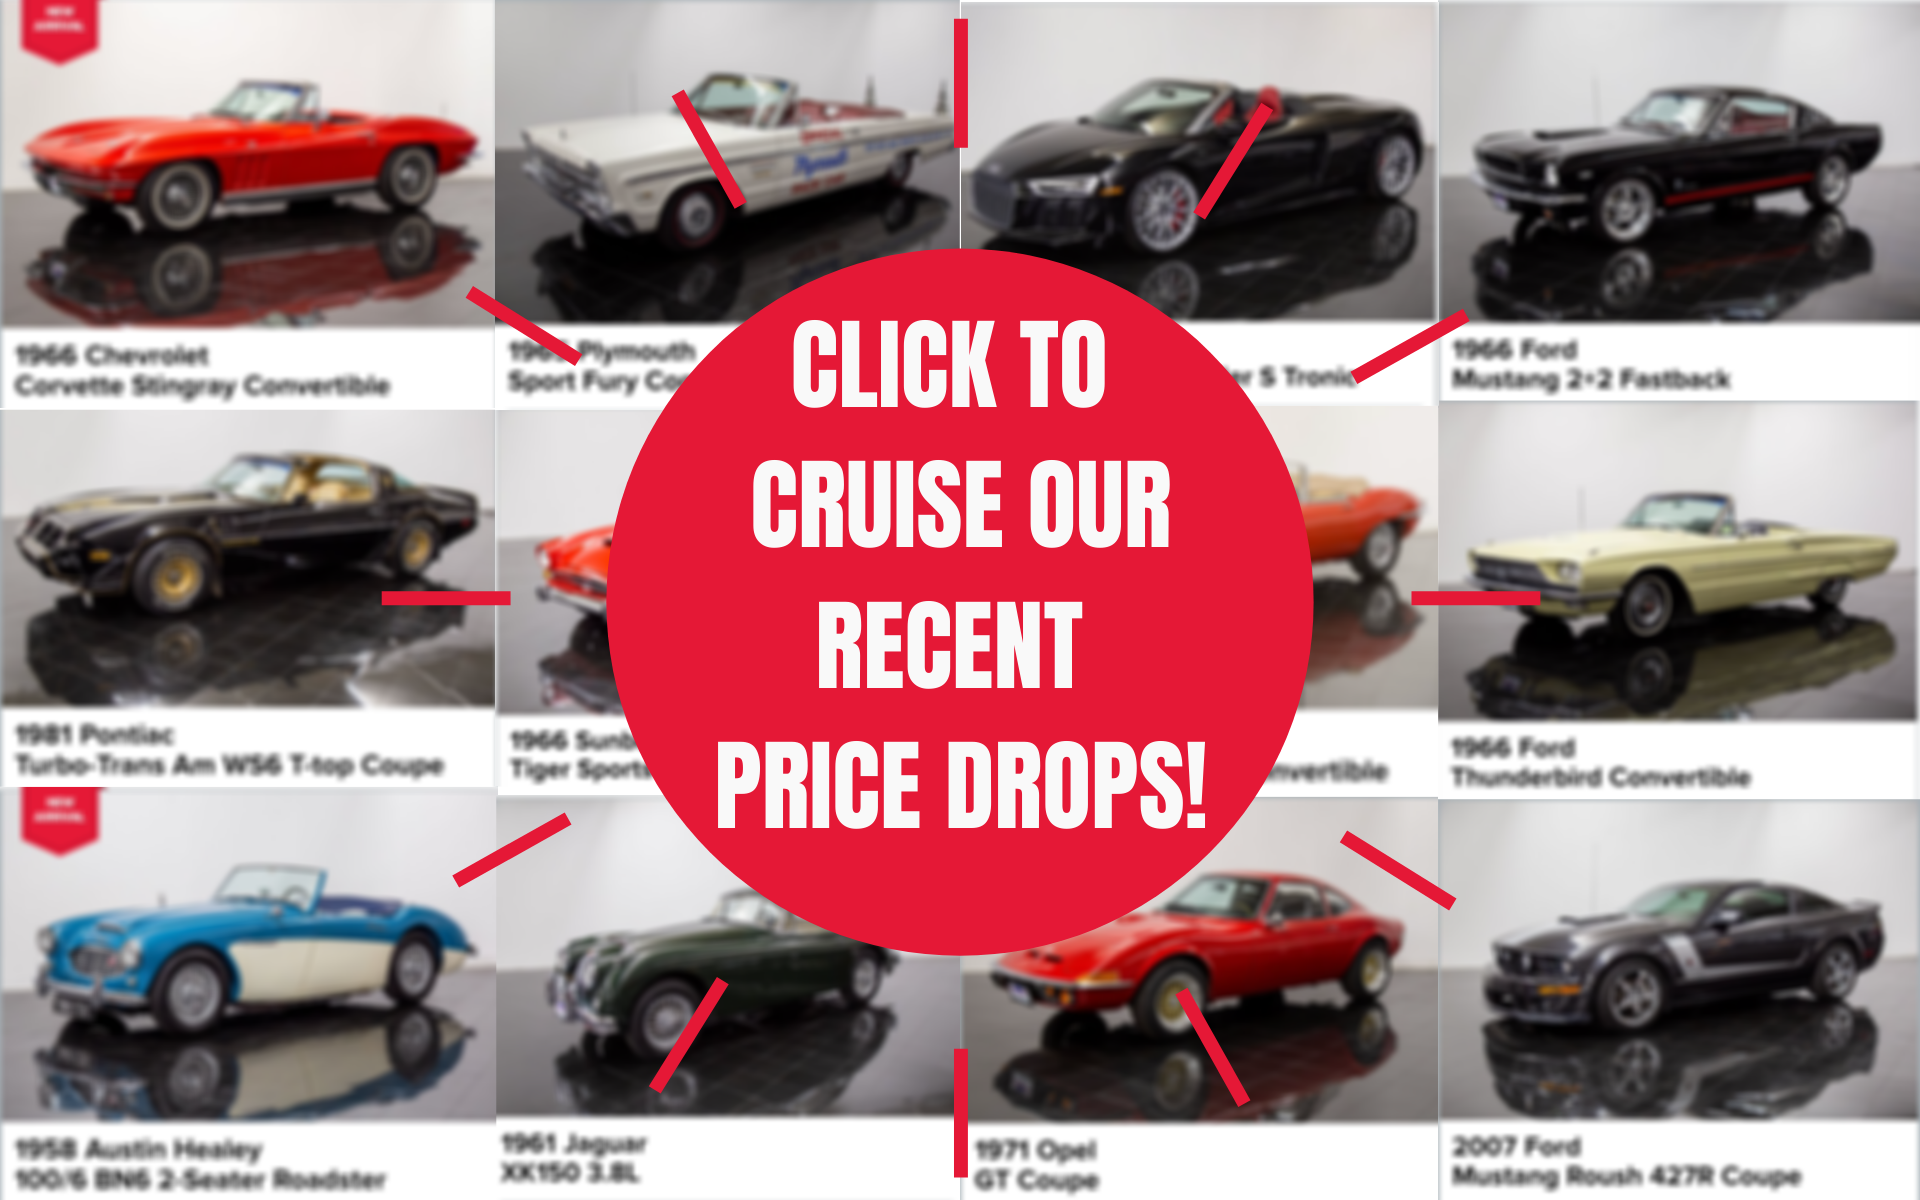 price drops on classic and collector cars